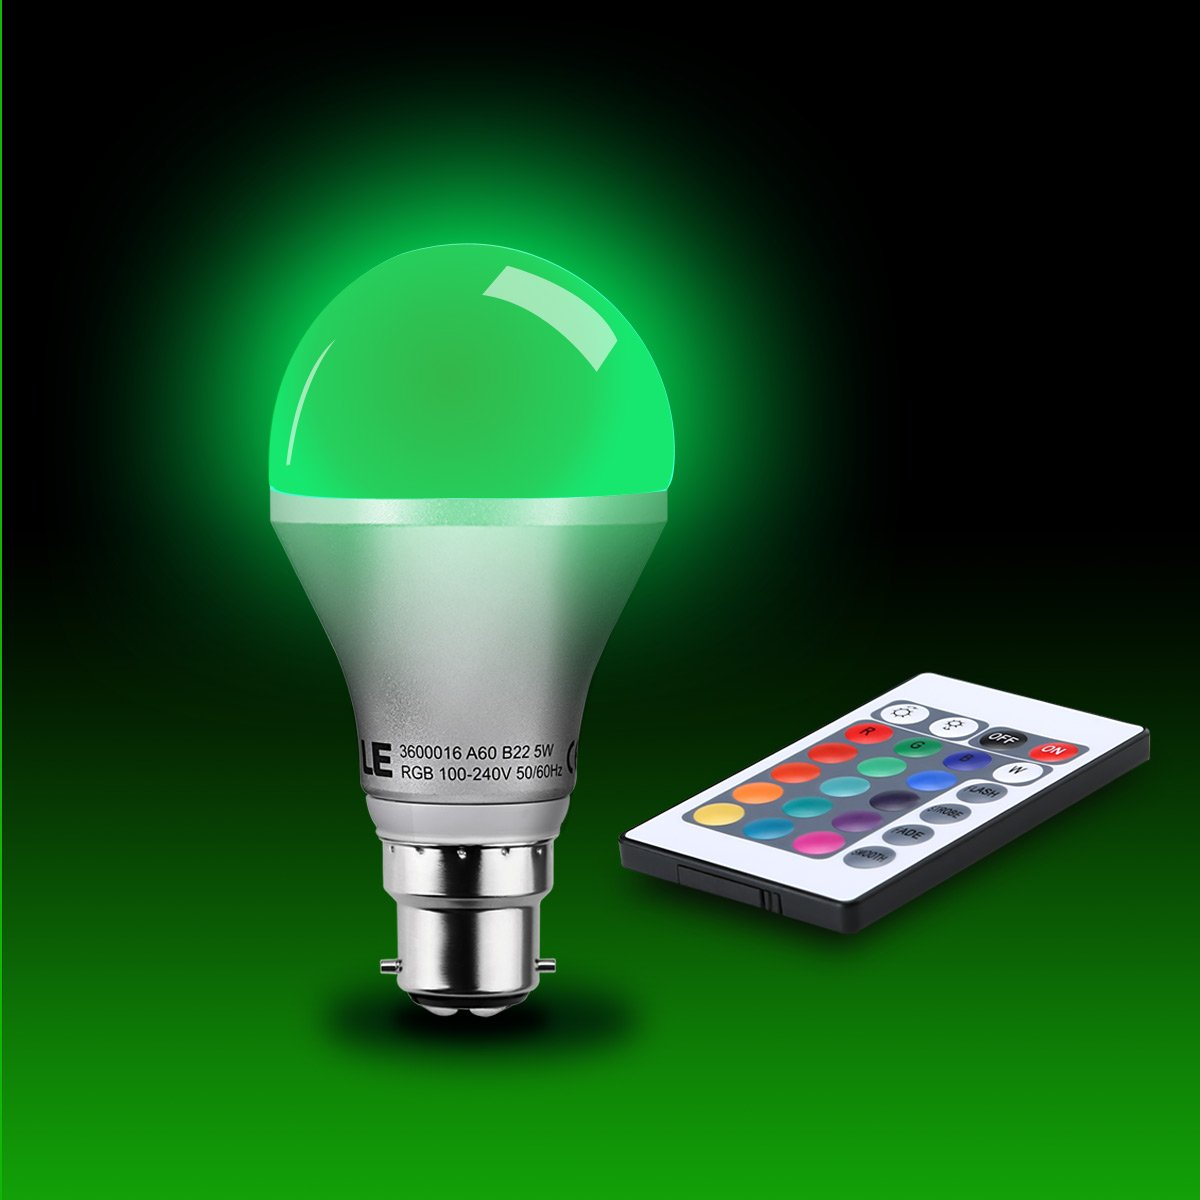 Le 5w a60 b22 dimmable rgb led bulbs 16 colour choices color le 5w a60 b22 dimmable rgb led bulbs 16 colour choices color changing remote controller included mood lighting bayonet led light bulbs parisarafo Image collections